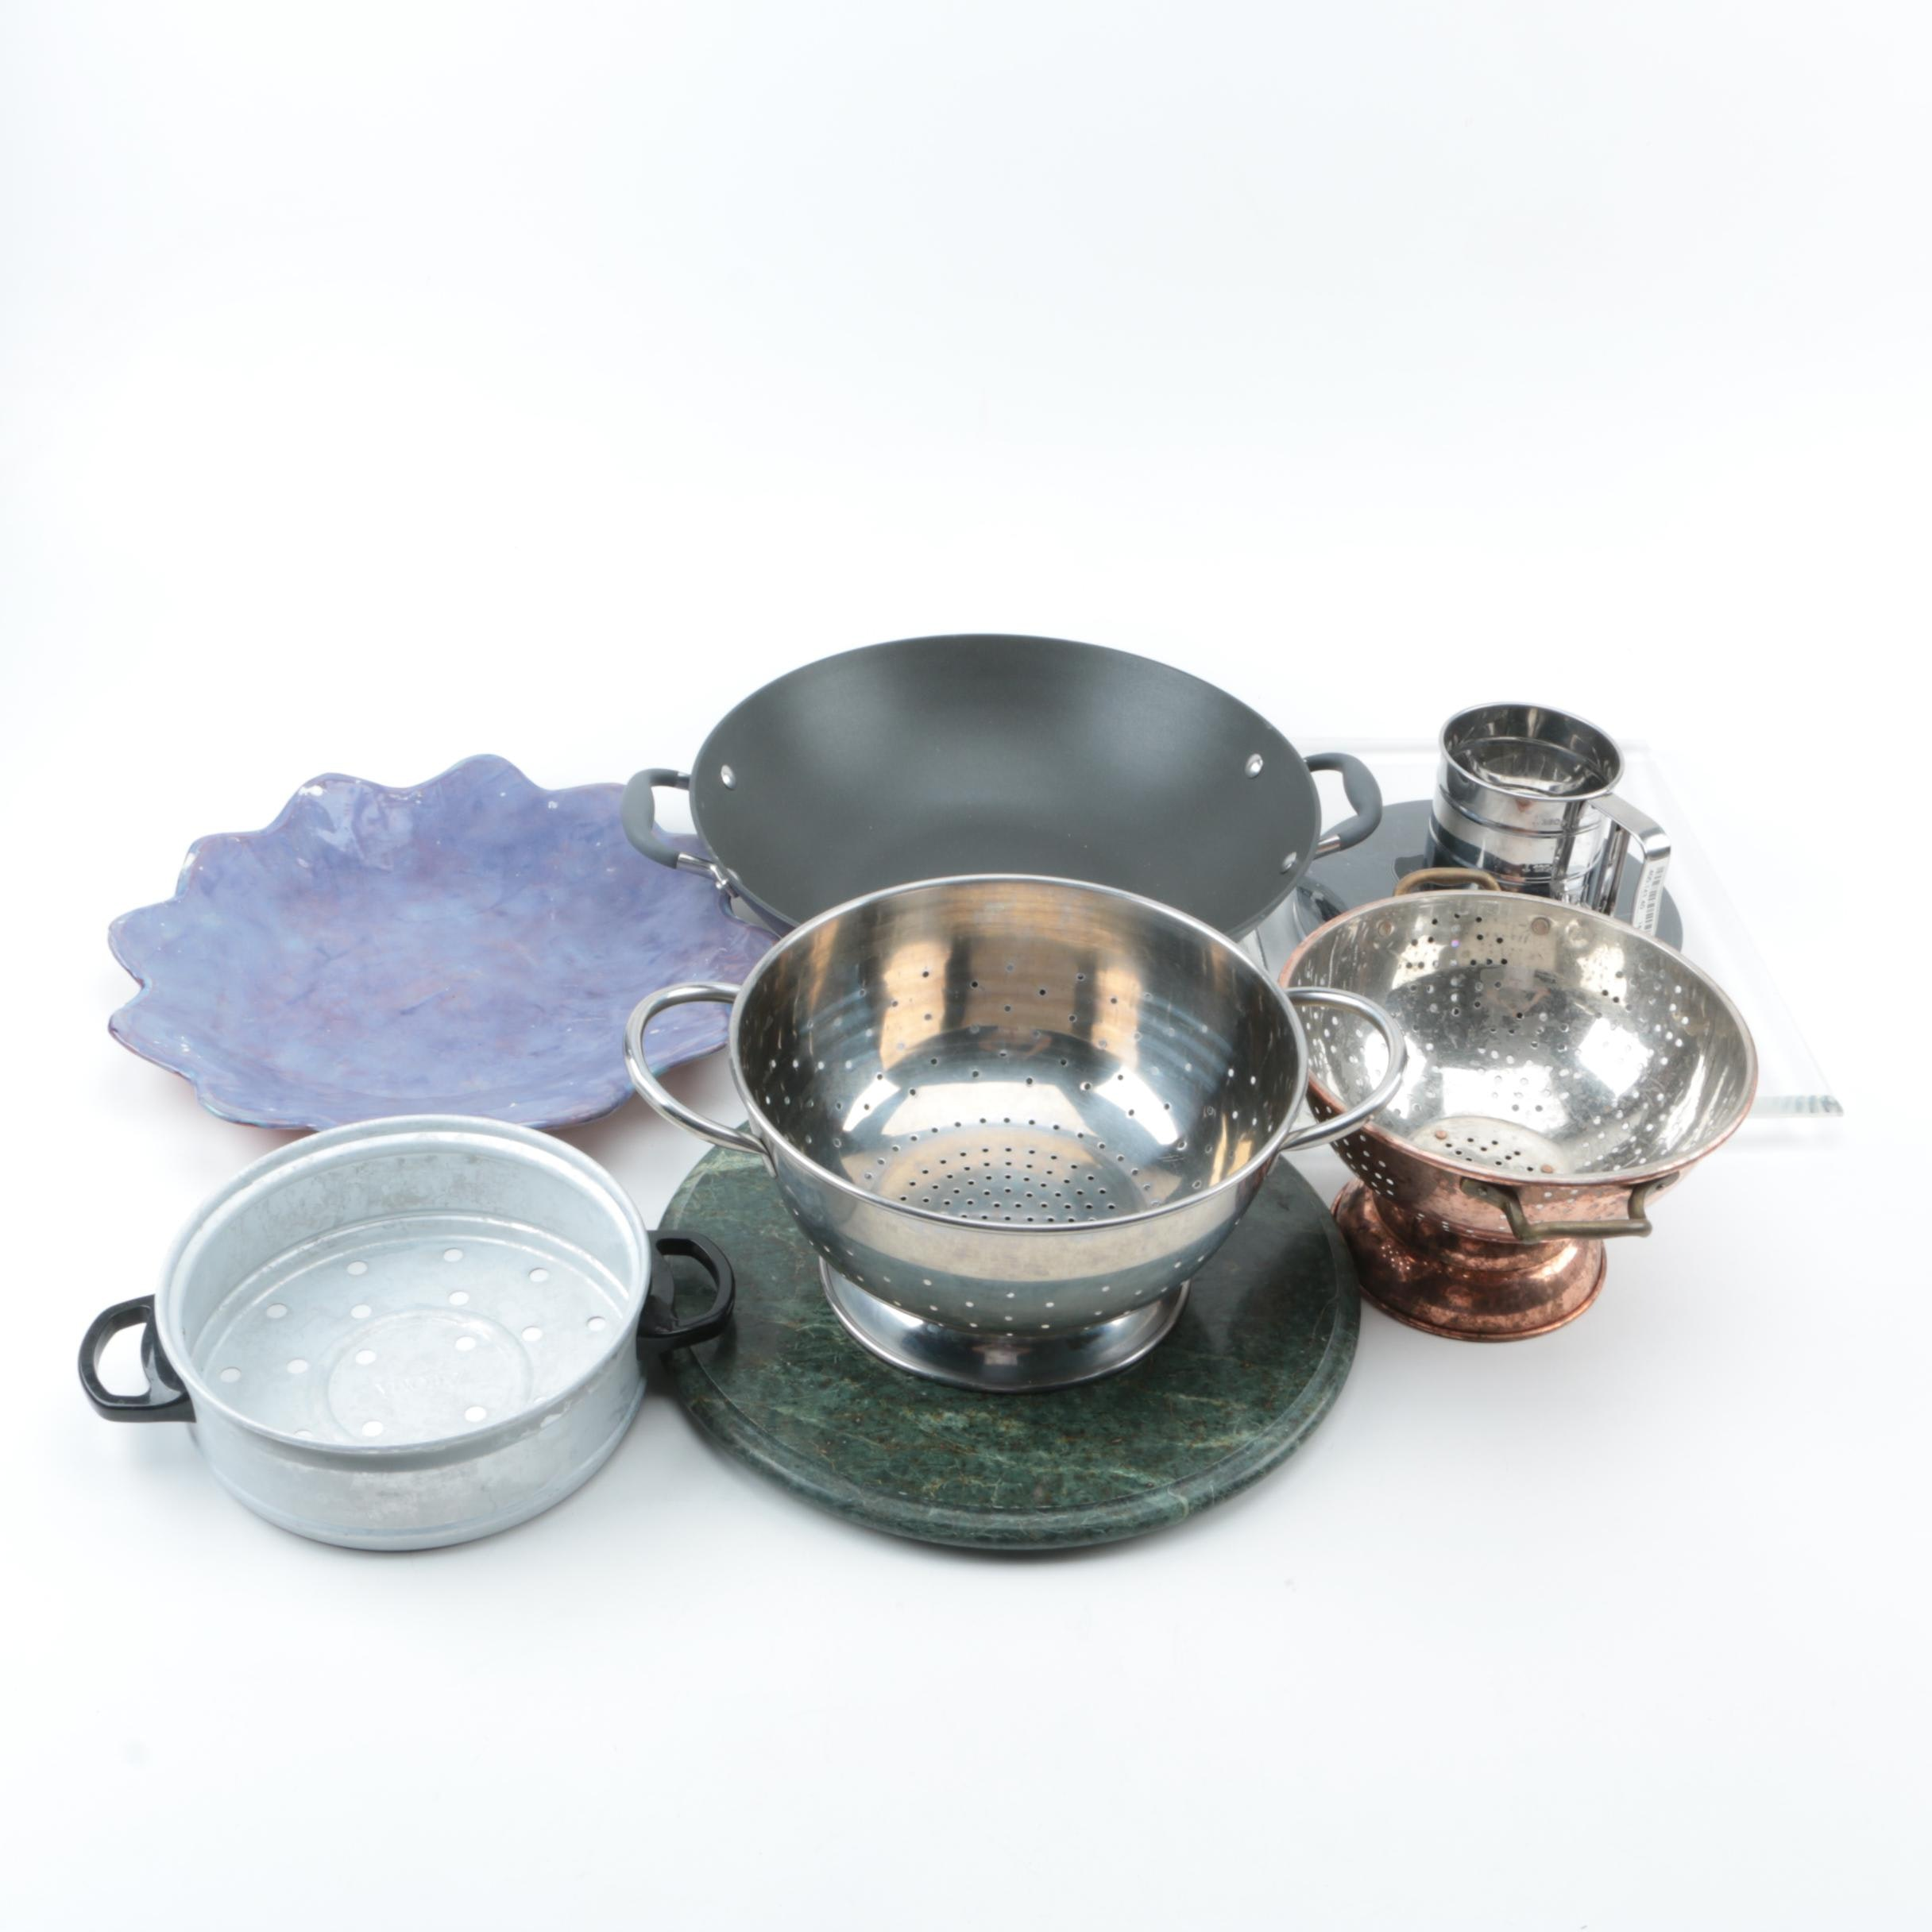 Kitchen Ware Including R.Wood Studio and Pottery Barn